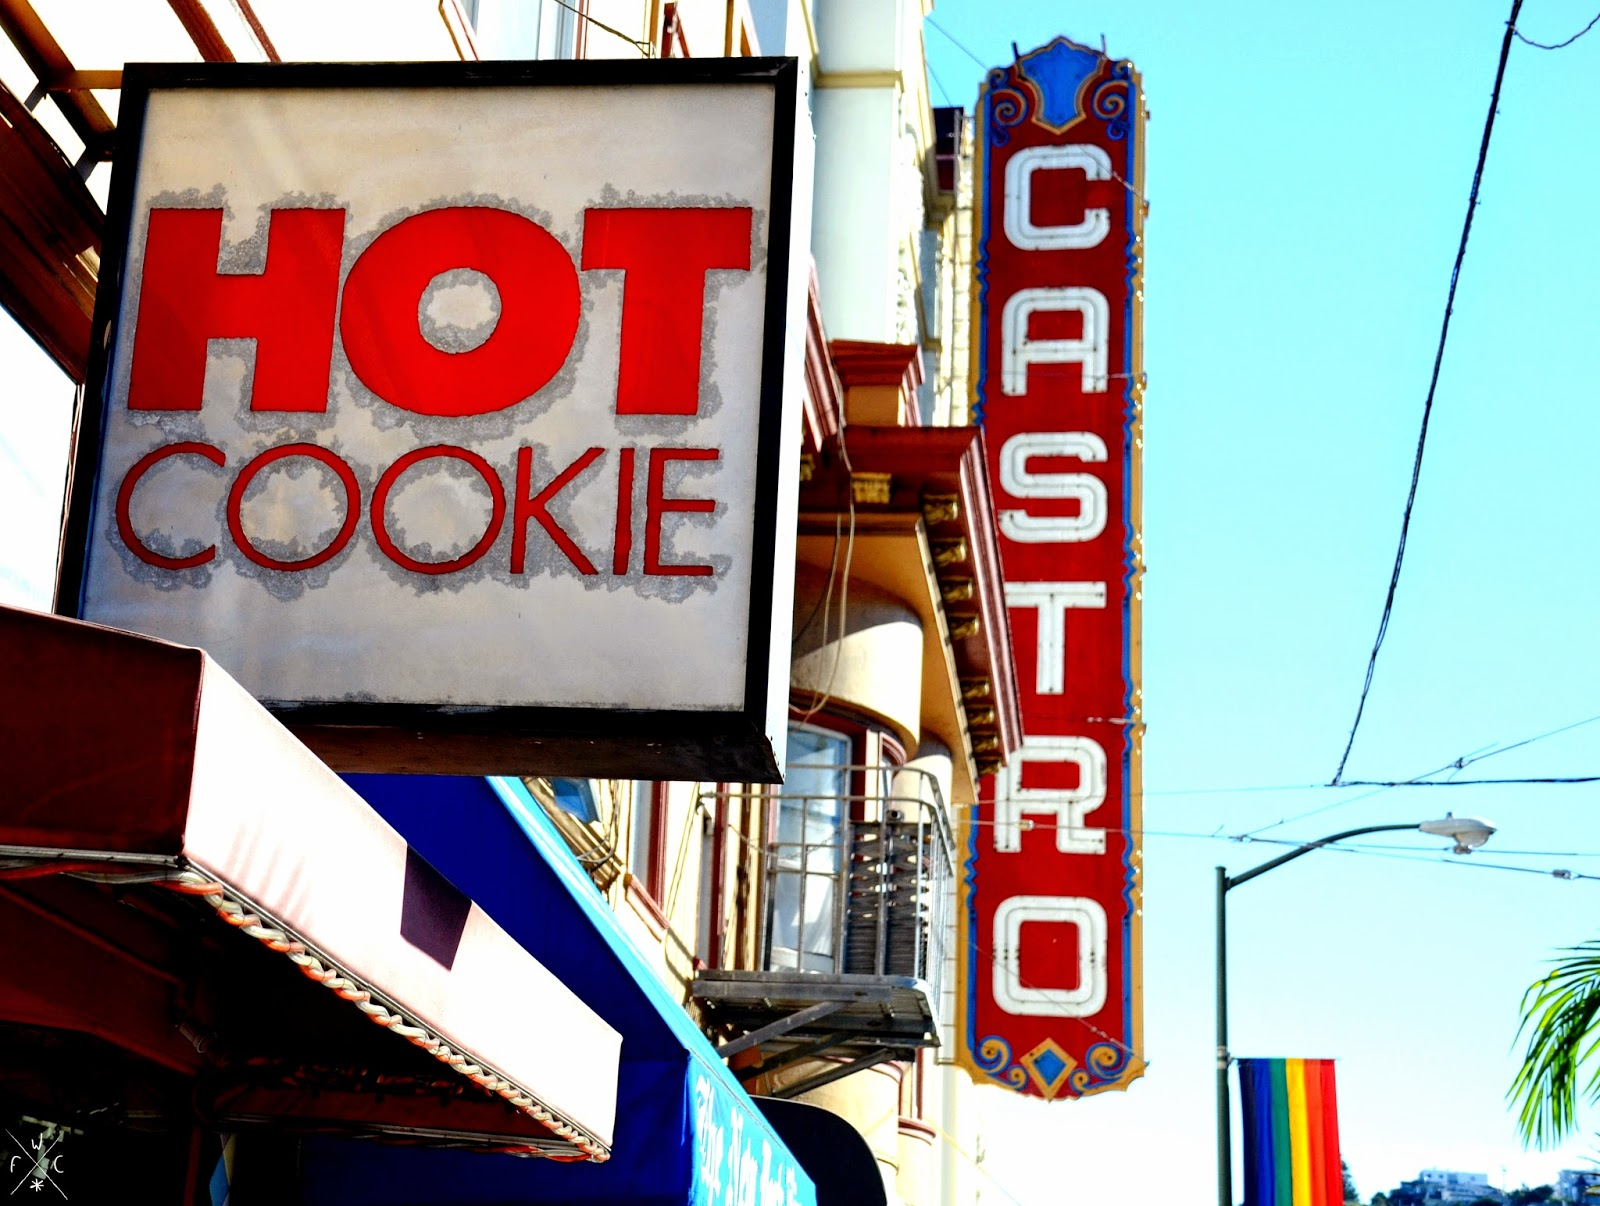 Hot Cookie - Castro, San Francisco, Californie, USA